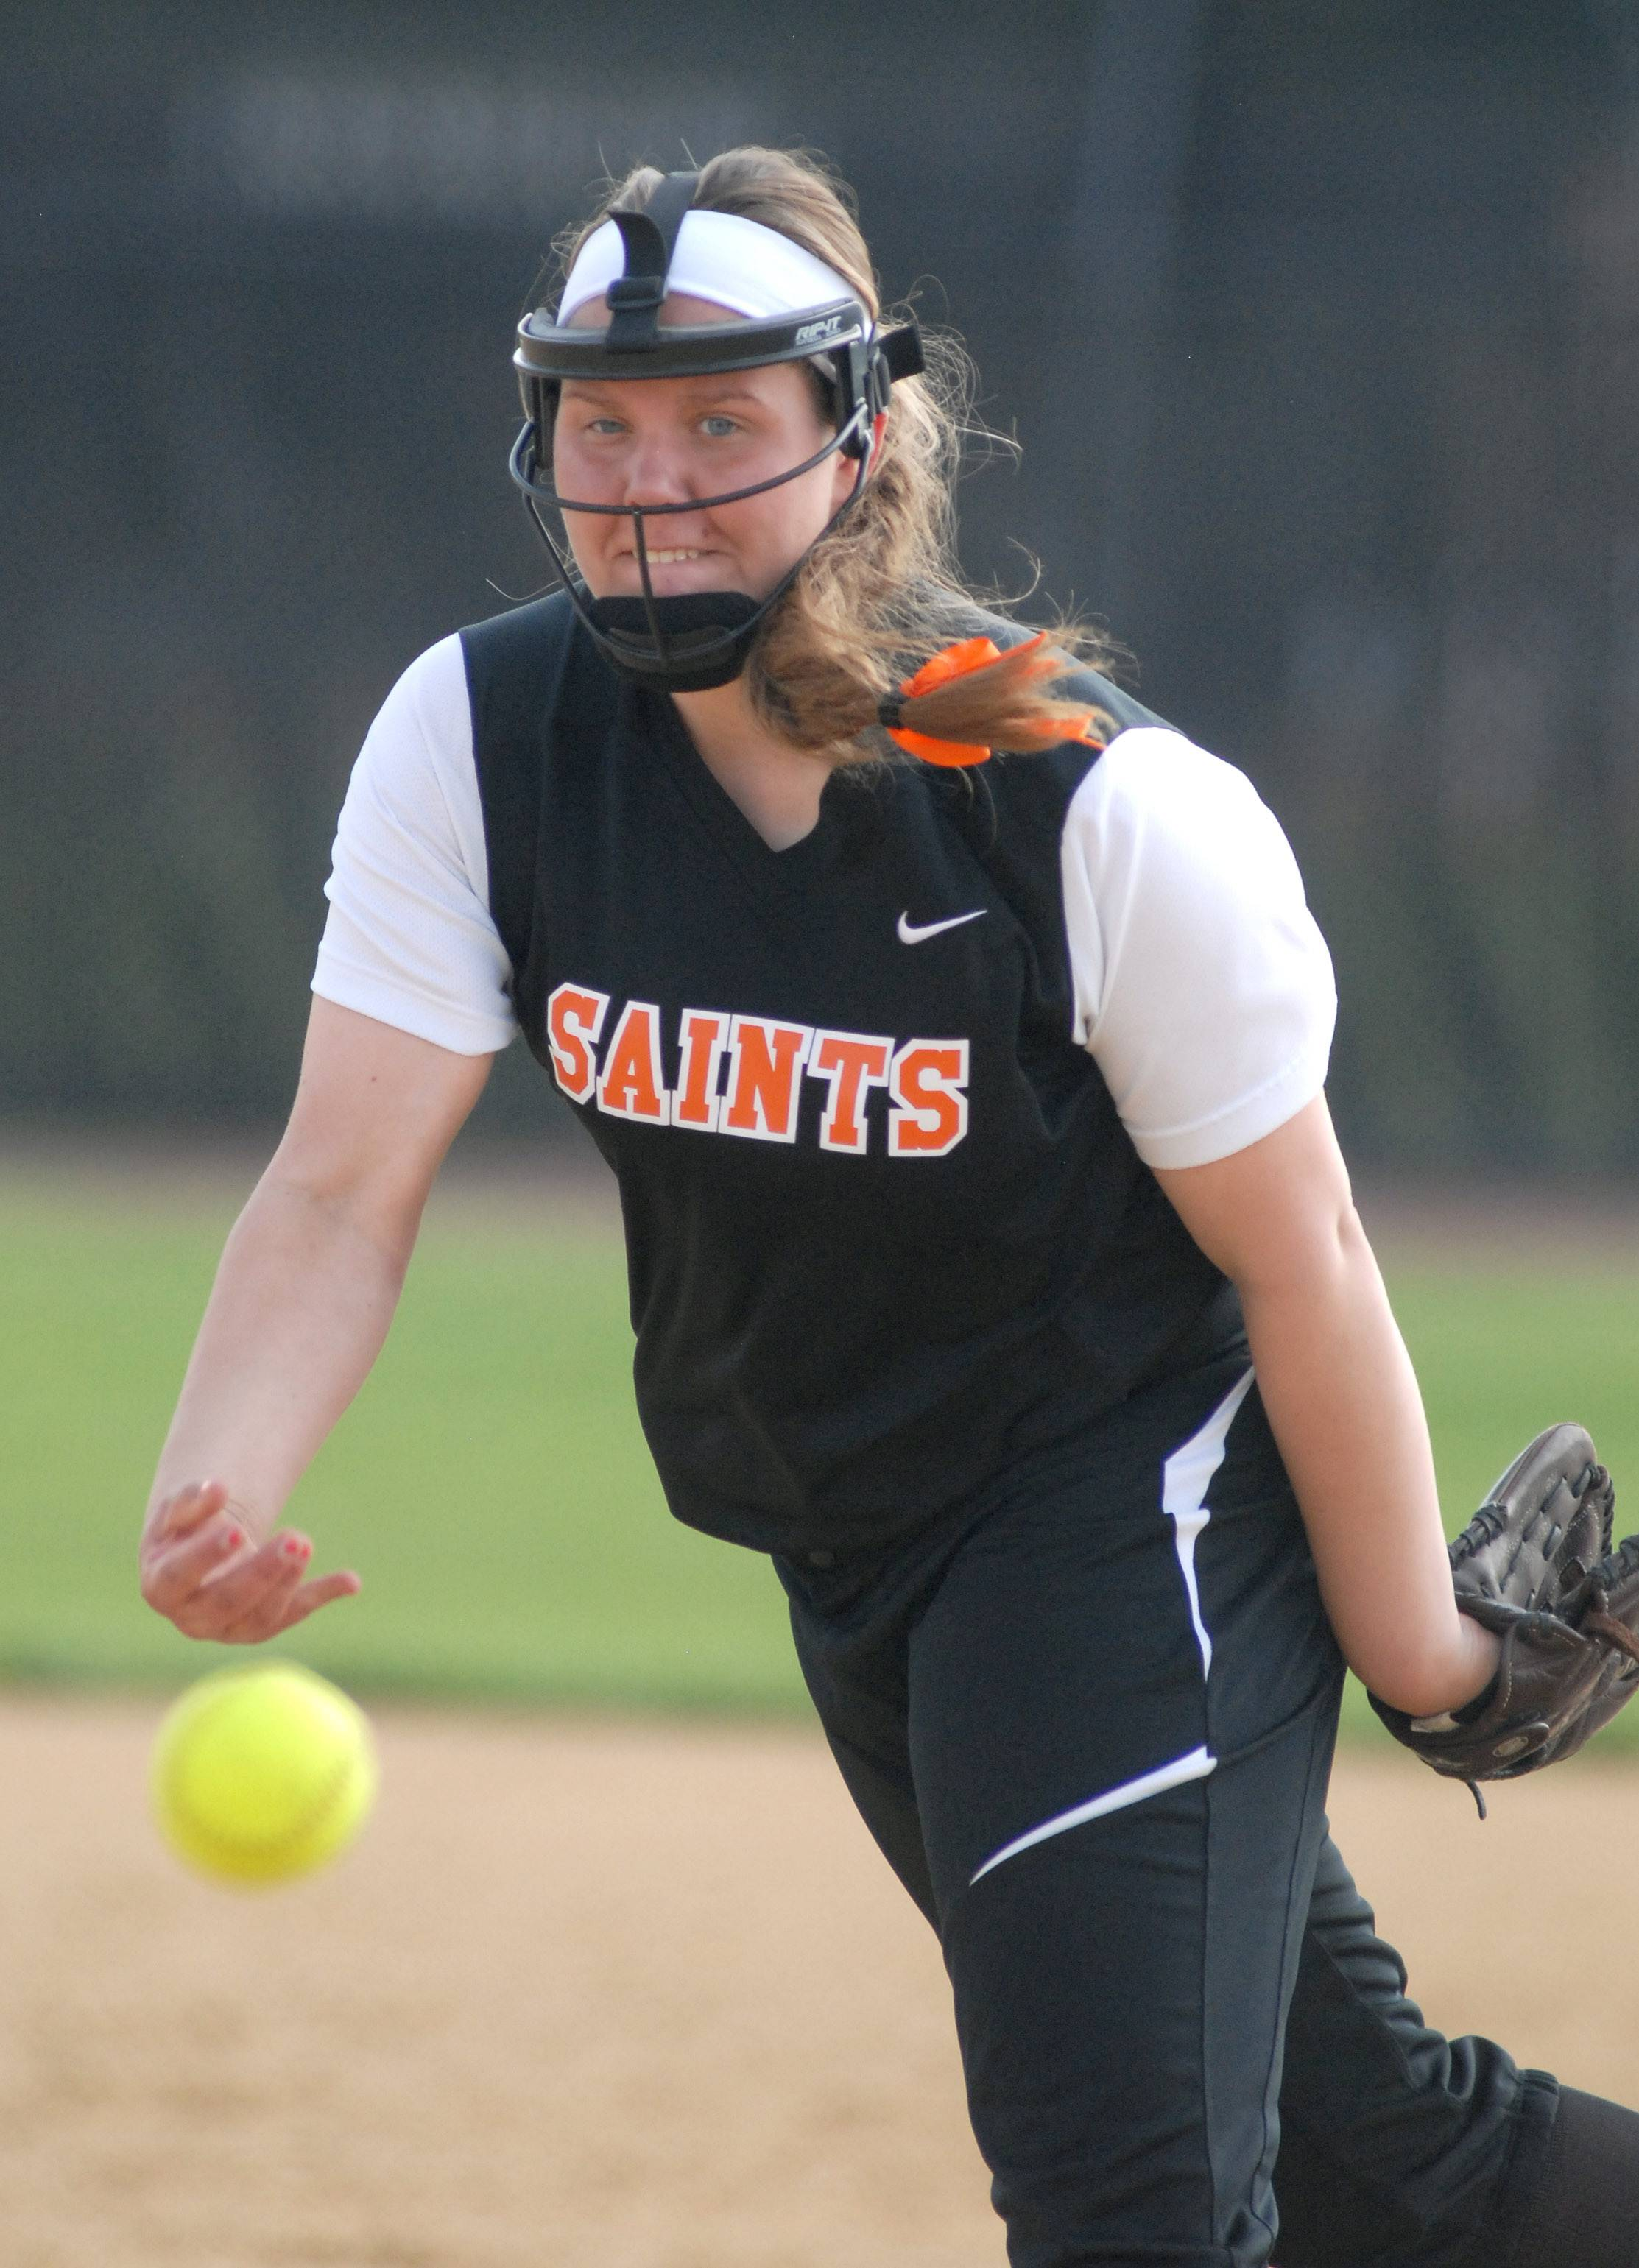 St. Charles East's Haley Beno fired a 2-hit shutout Tuesday.